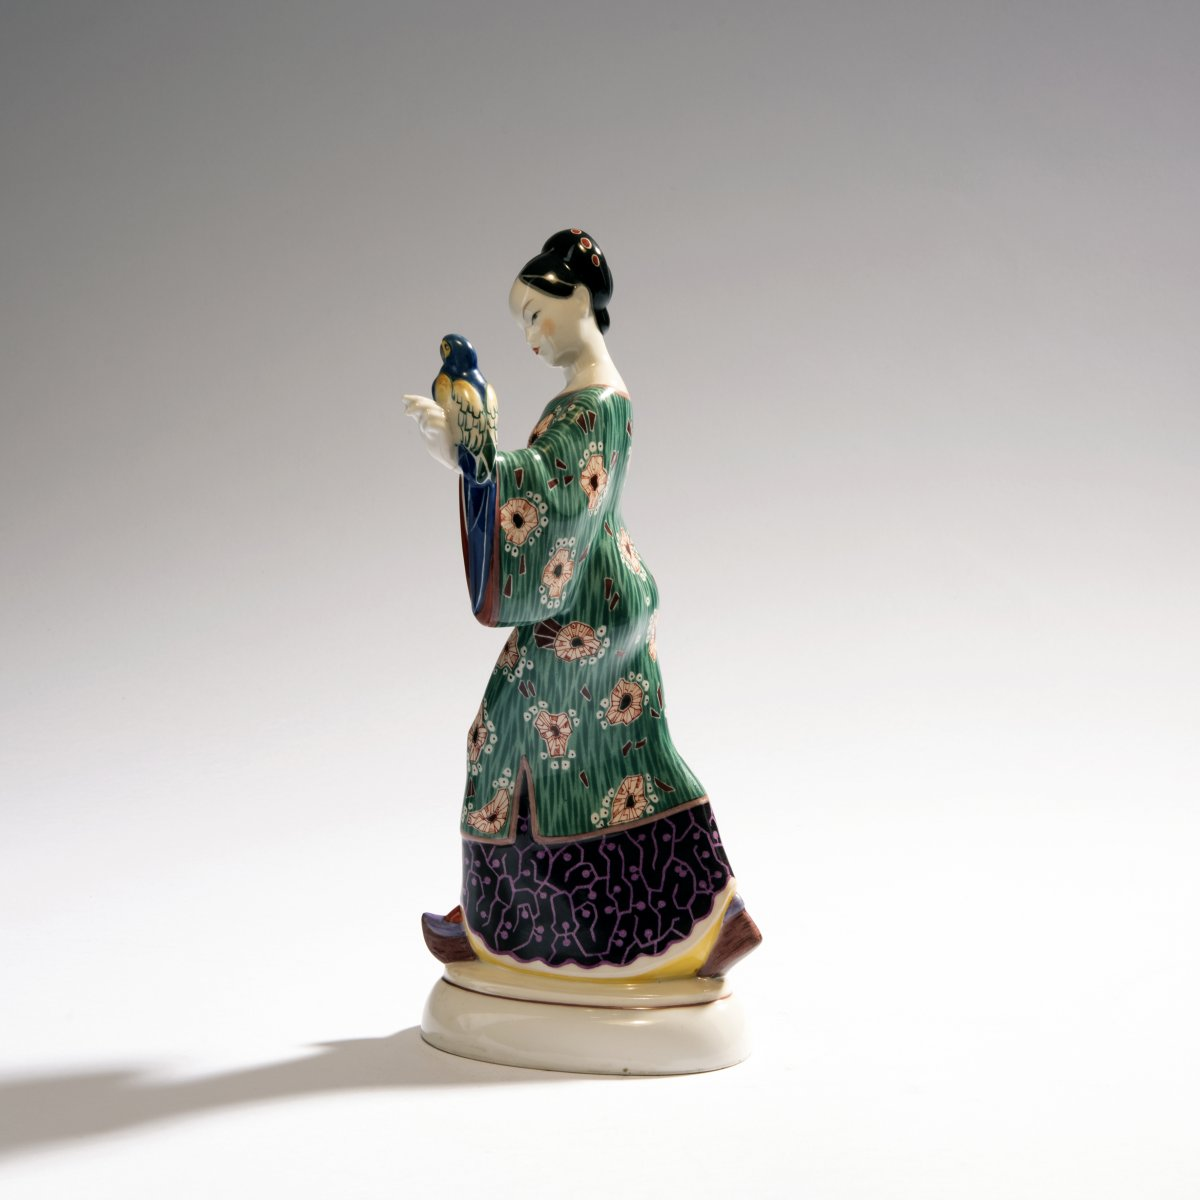 Lot 57 - Adolph Amberg, 'Chinese woman', 1910'Chinese woman', 1910H. 27.3 cm. Made by KPM Berlin.